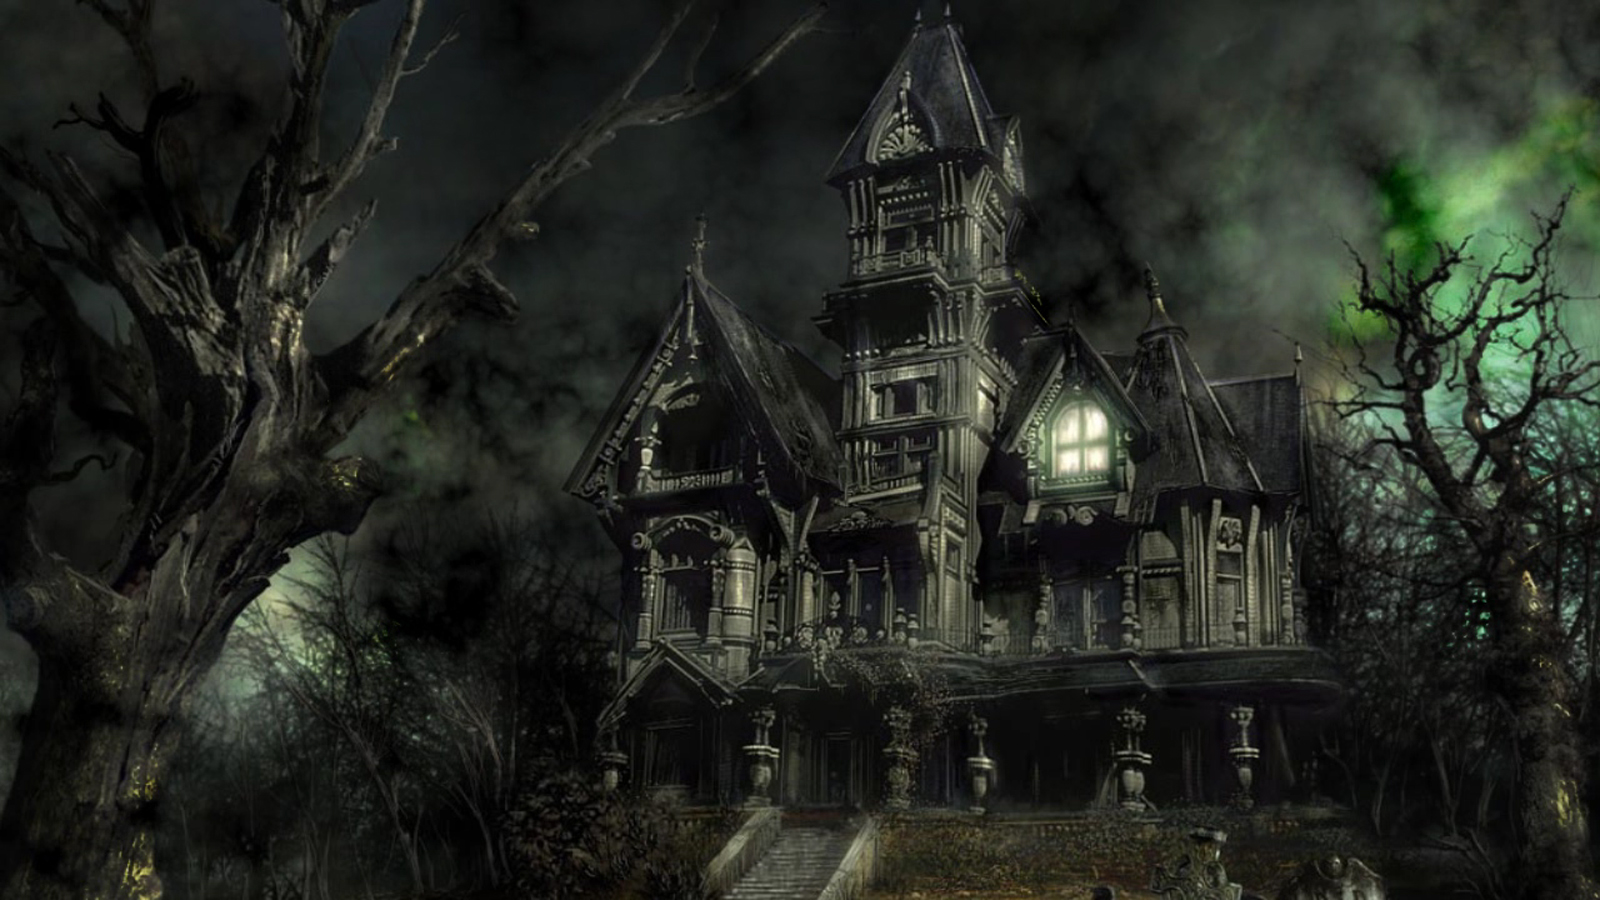 dreamscenes video loops footage and motion backgrounds 1600x900